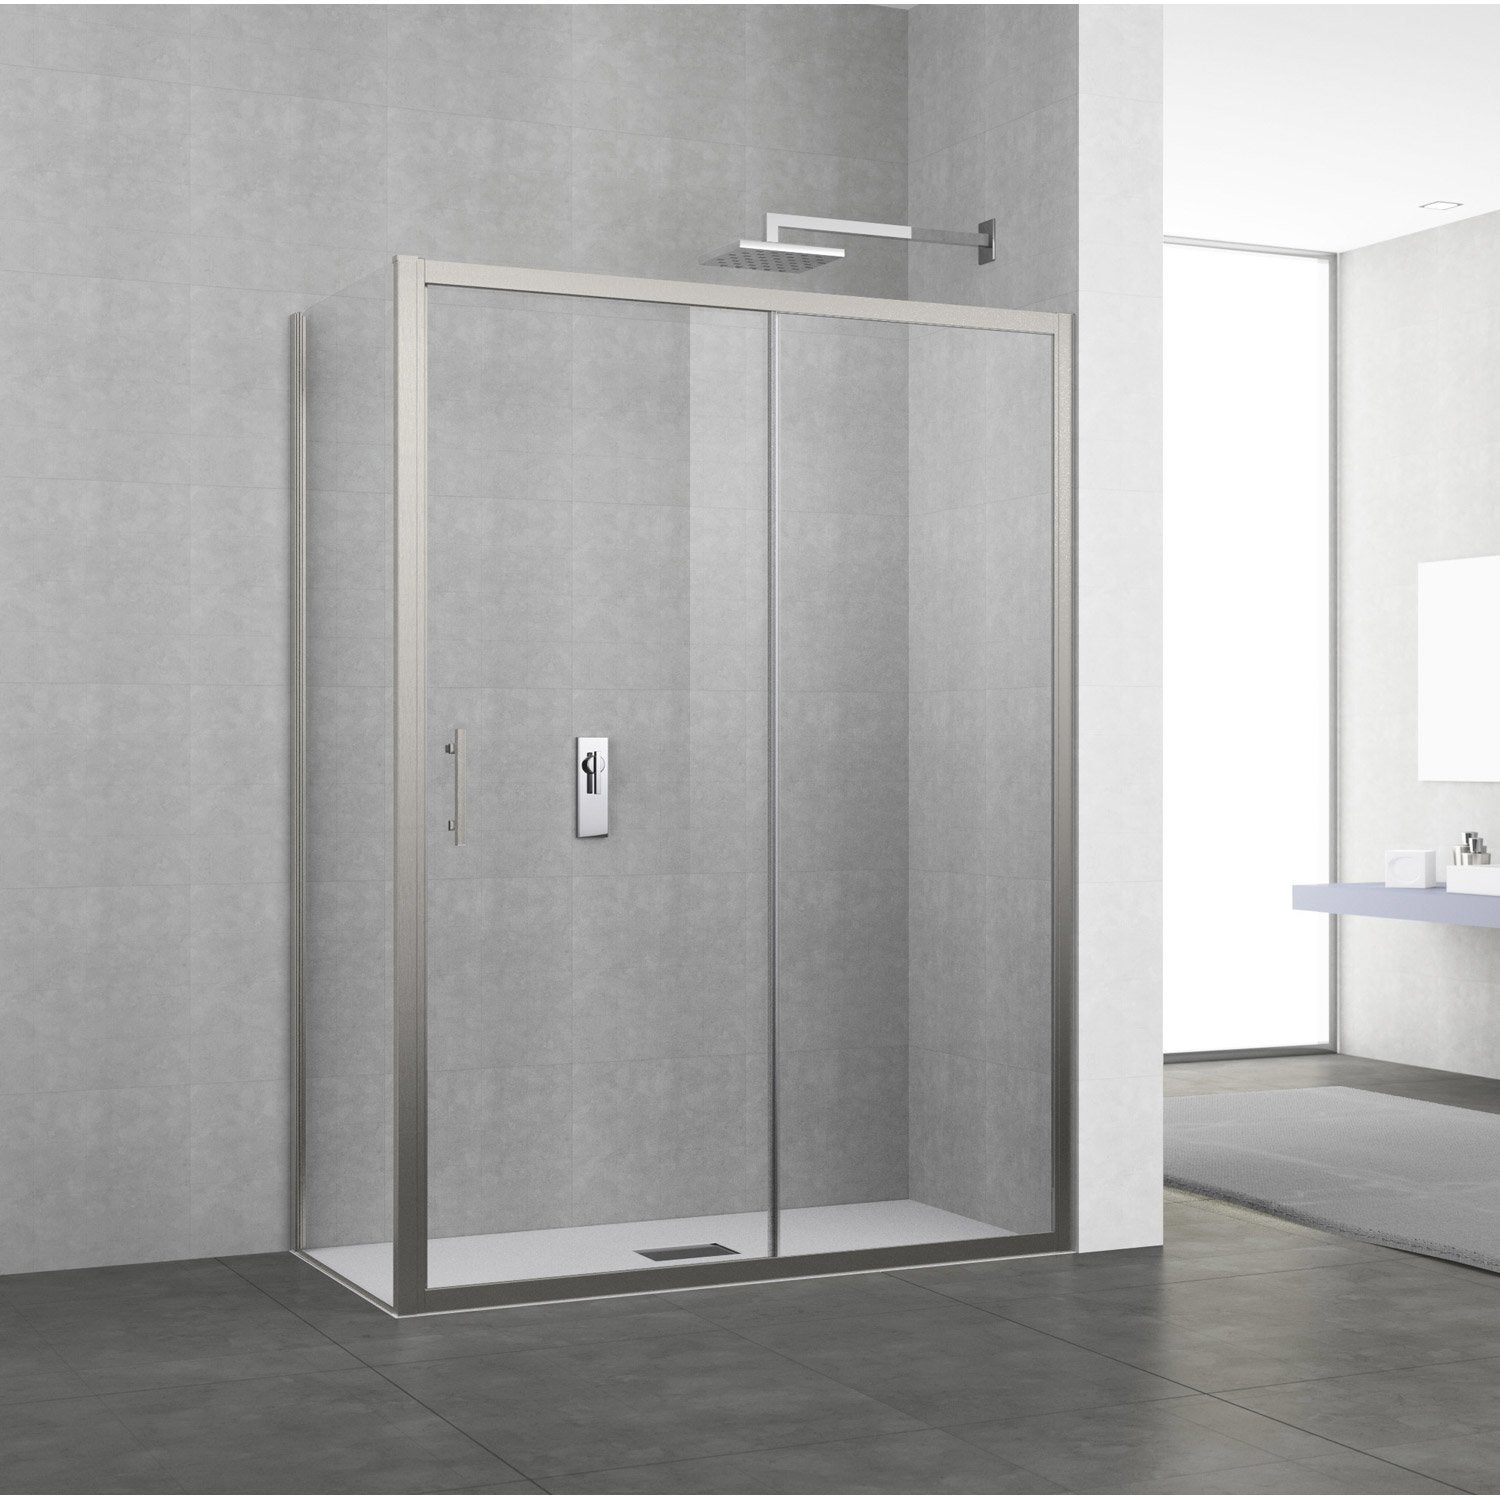 Porte coulissante leroymerlin maison design for Leroy merlin porte douche